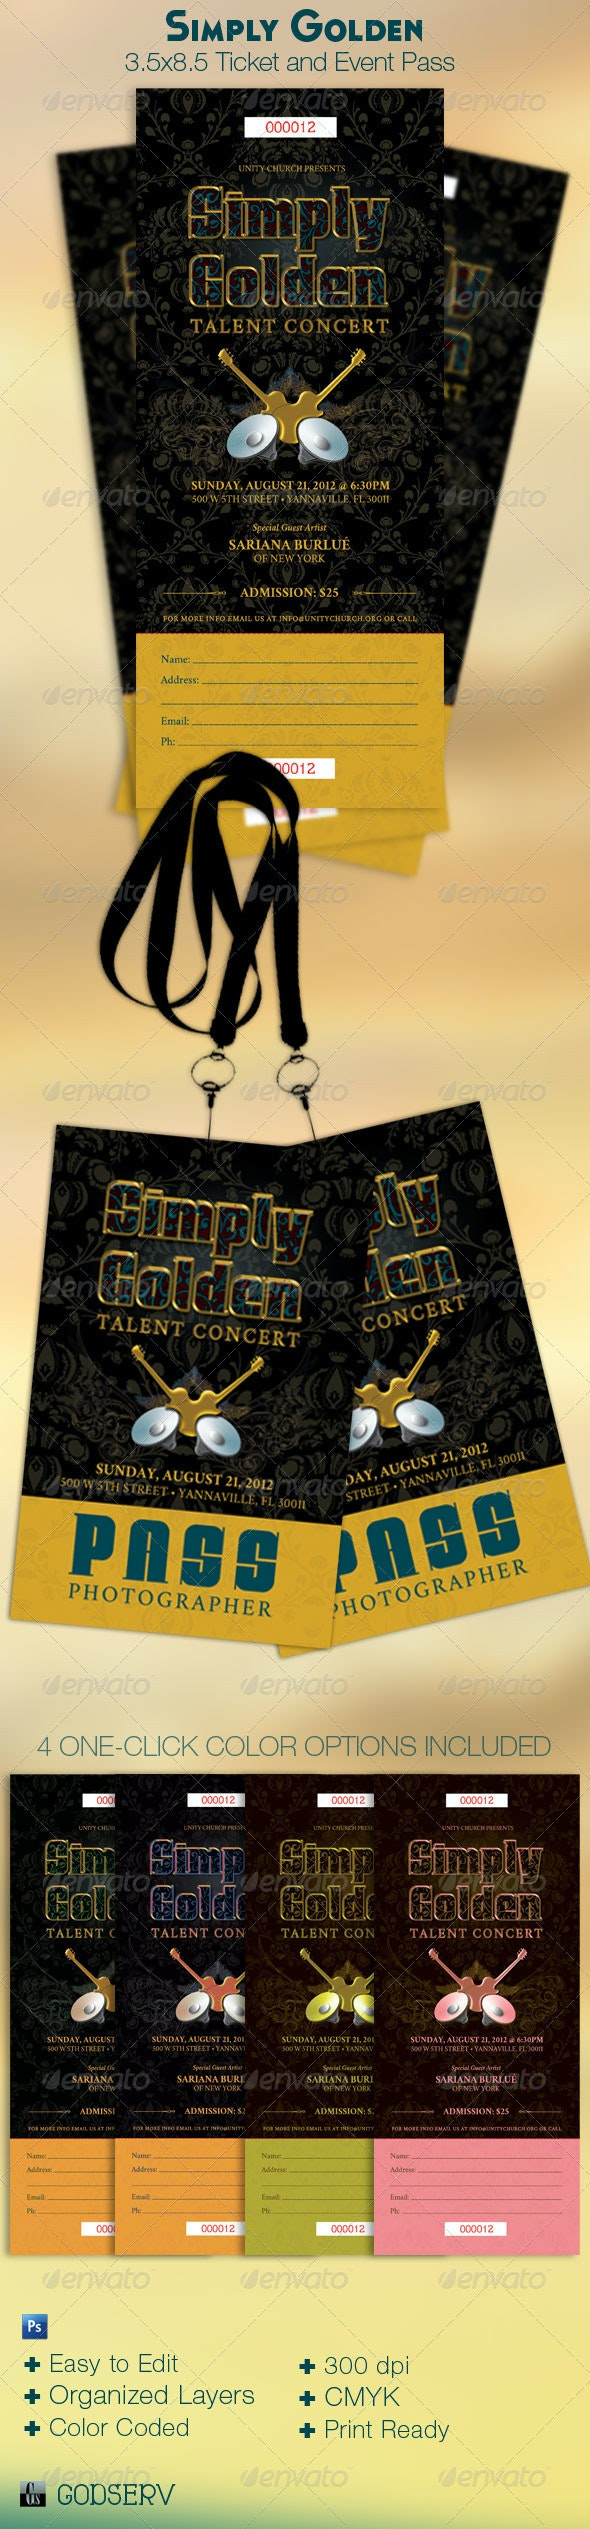 Golden Ticket Event Pass Template - Miscellaneous Print Templates